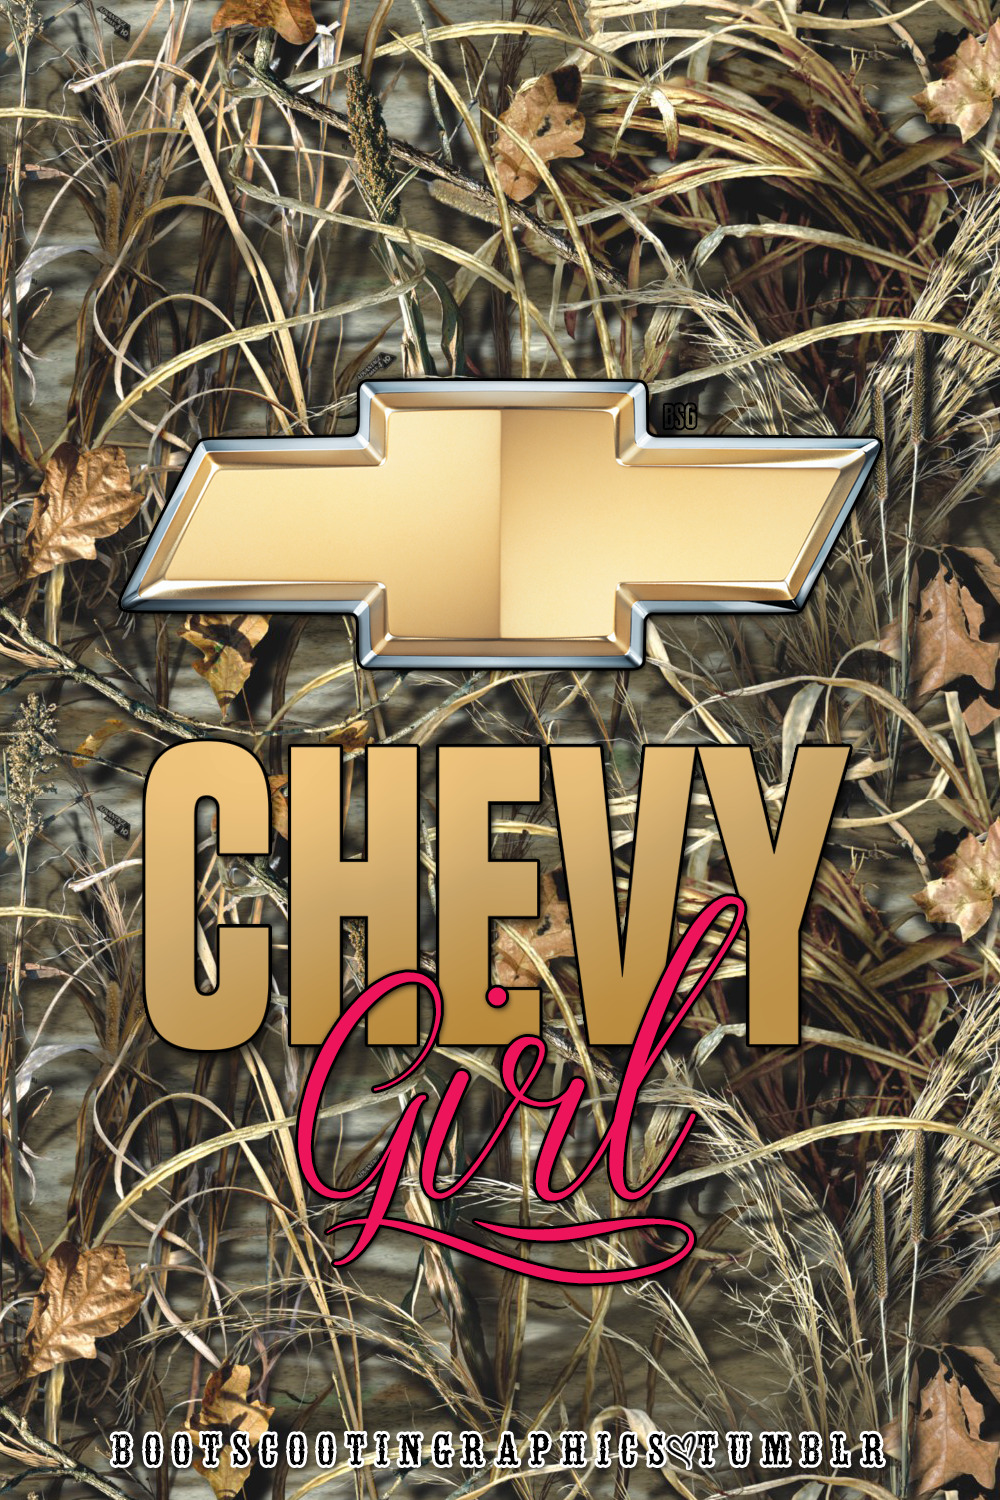 Free download Country Girl Chevy [1000x1500] for your ...